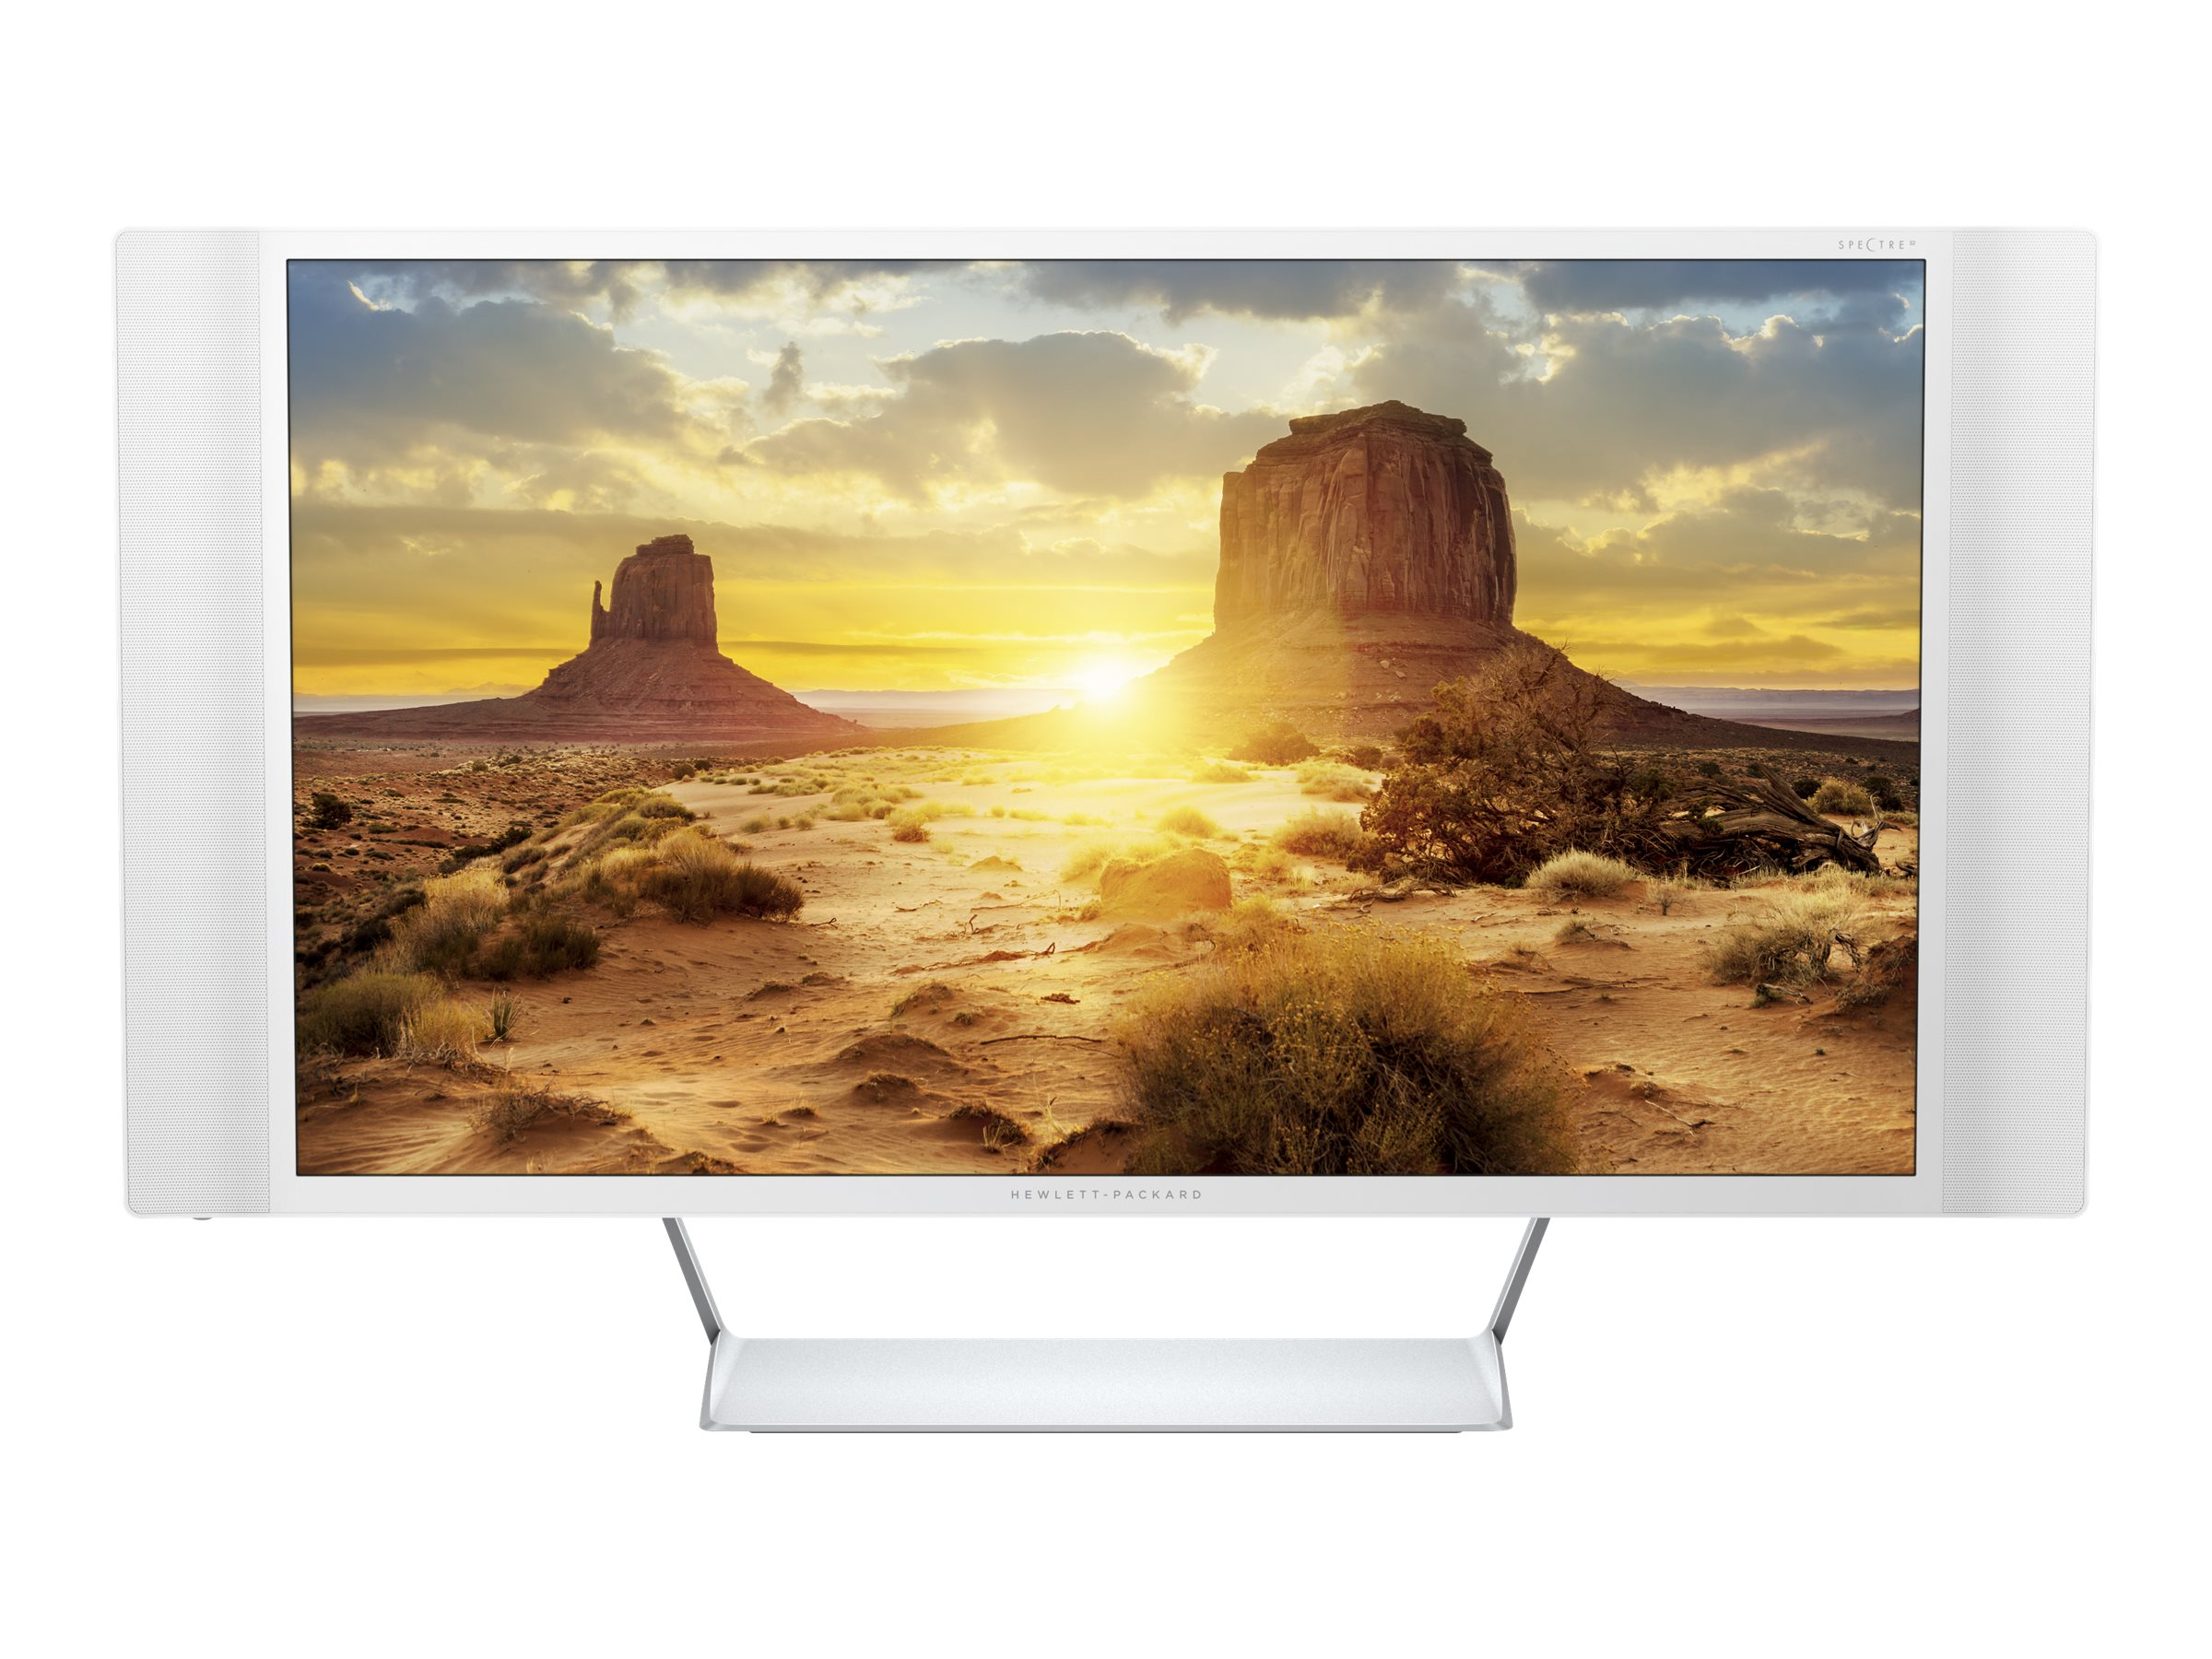 HP 32 Spectre Studio Ultra HD LED-LCD Display, White